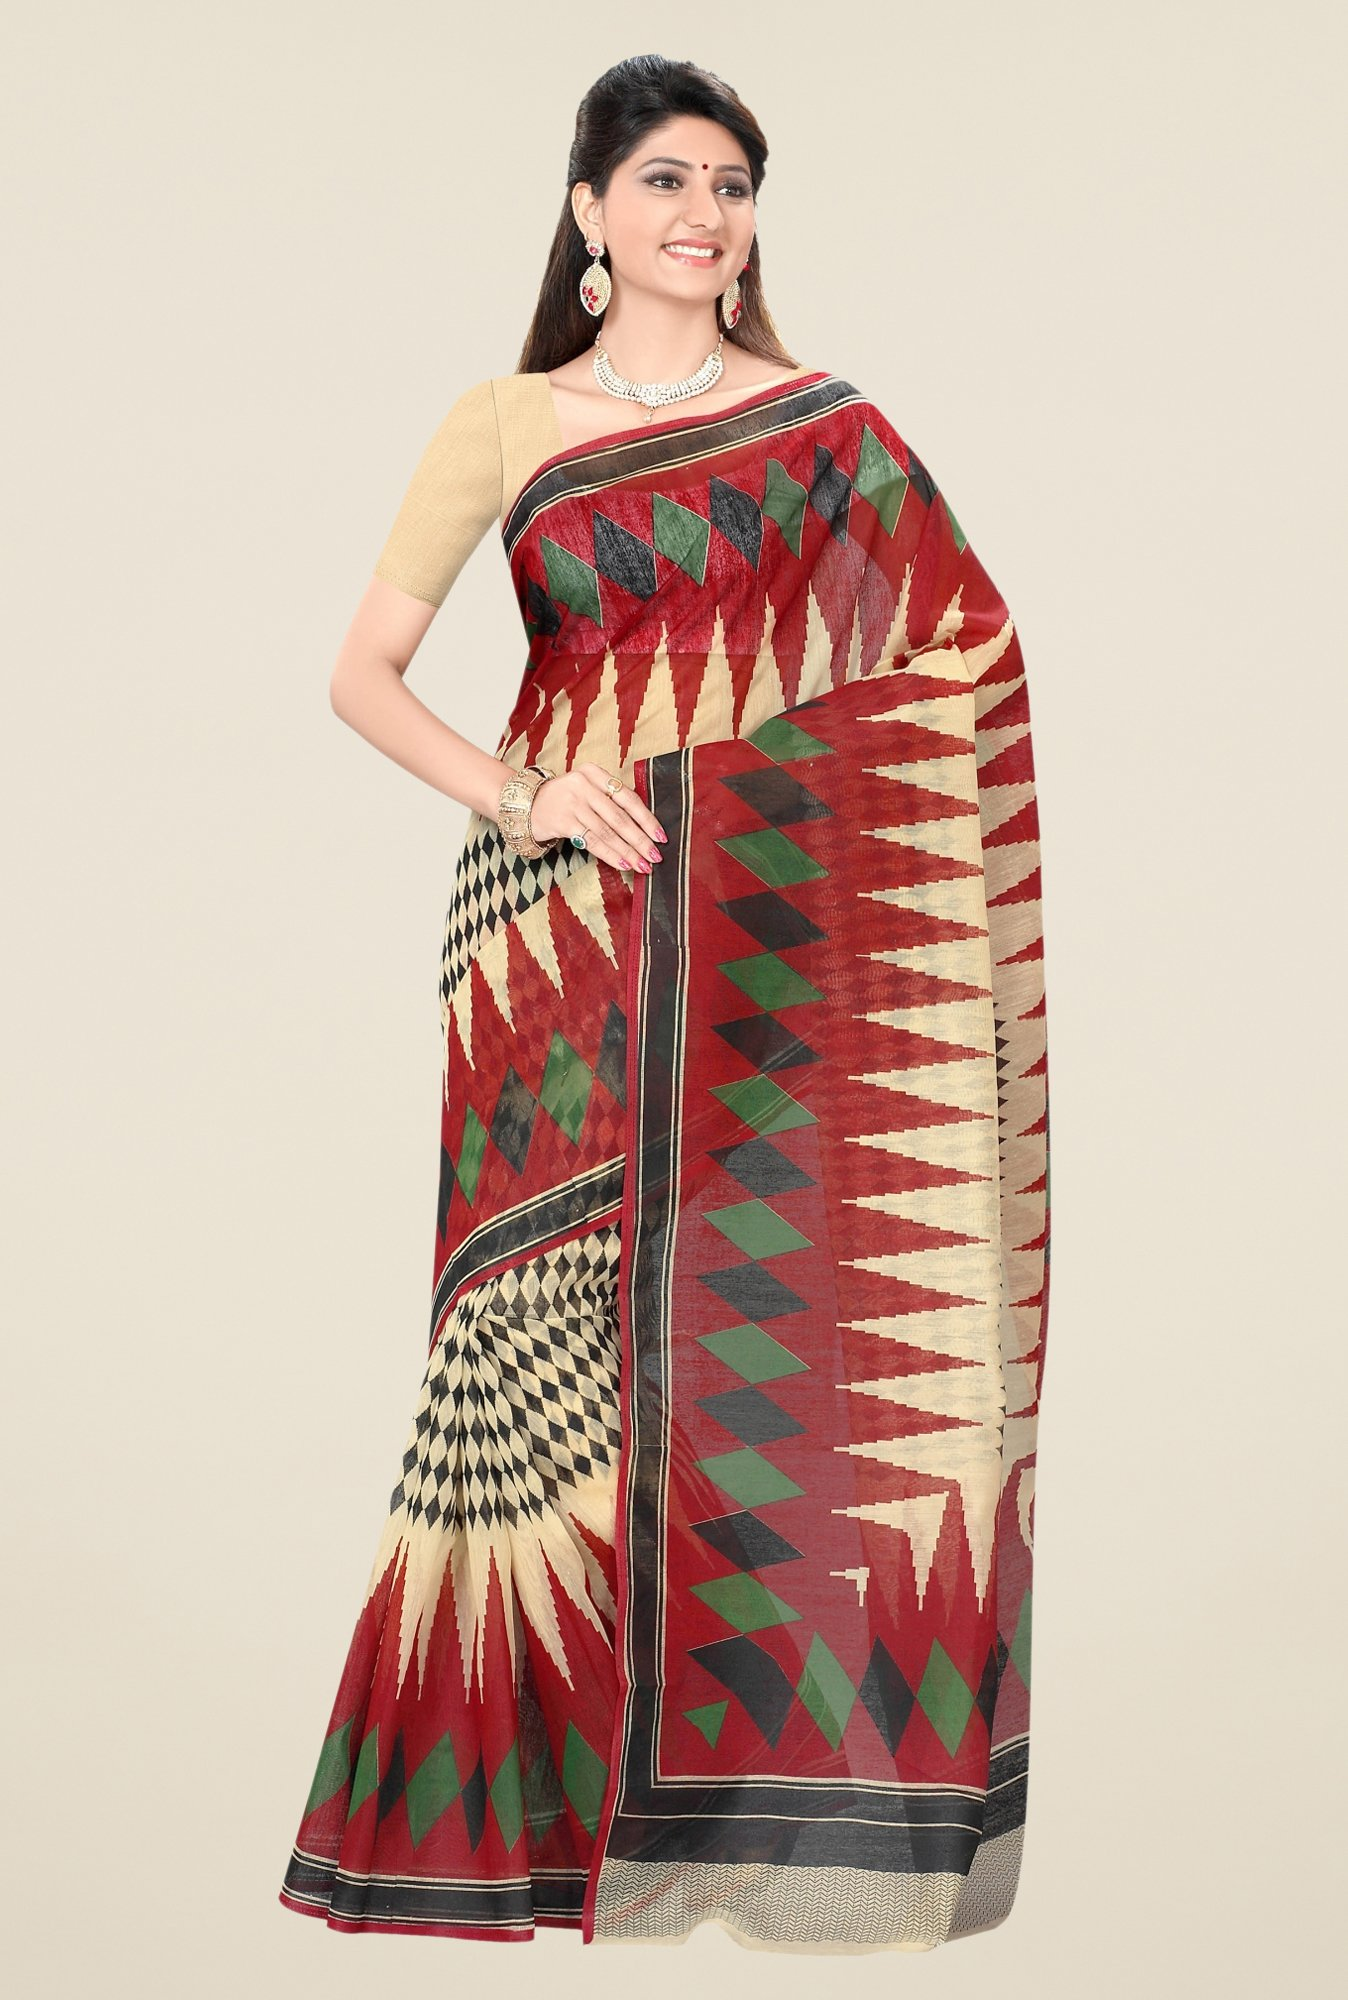 Triveni Beige & Red Printed Blended Cotton Saree